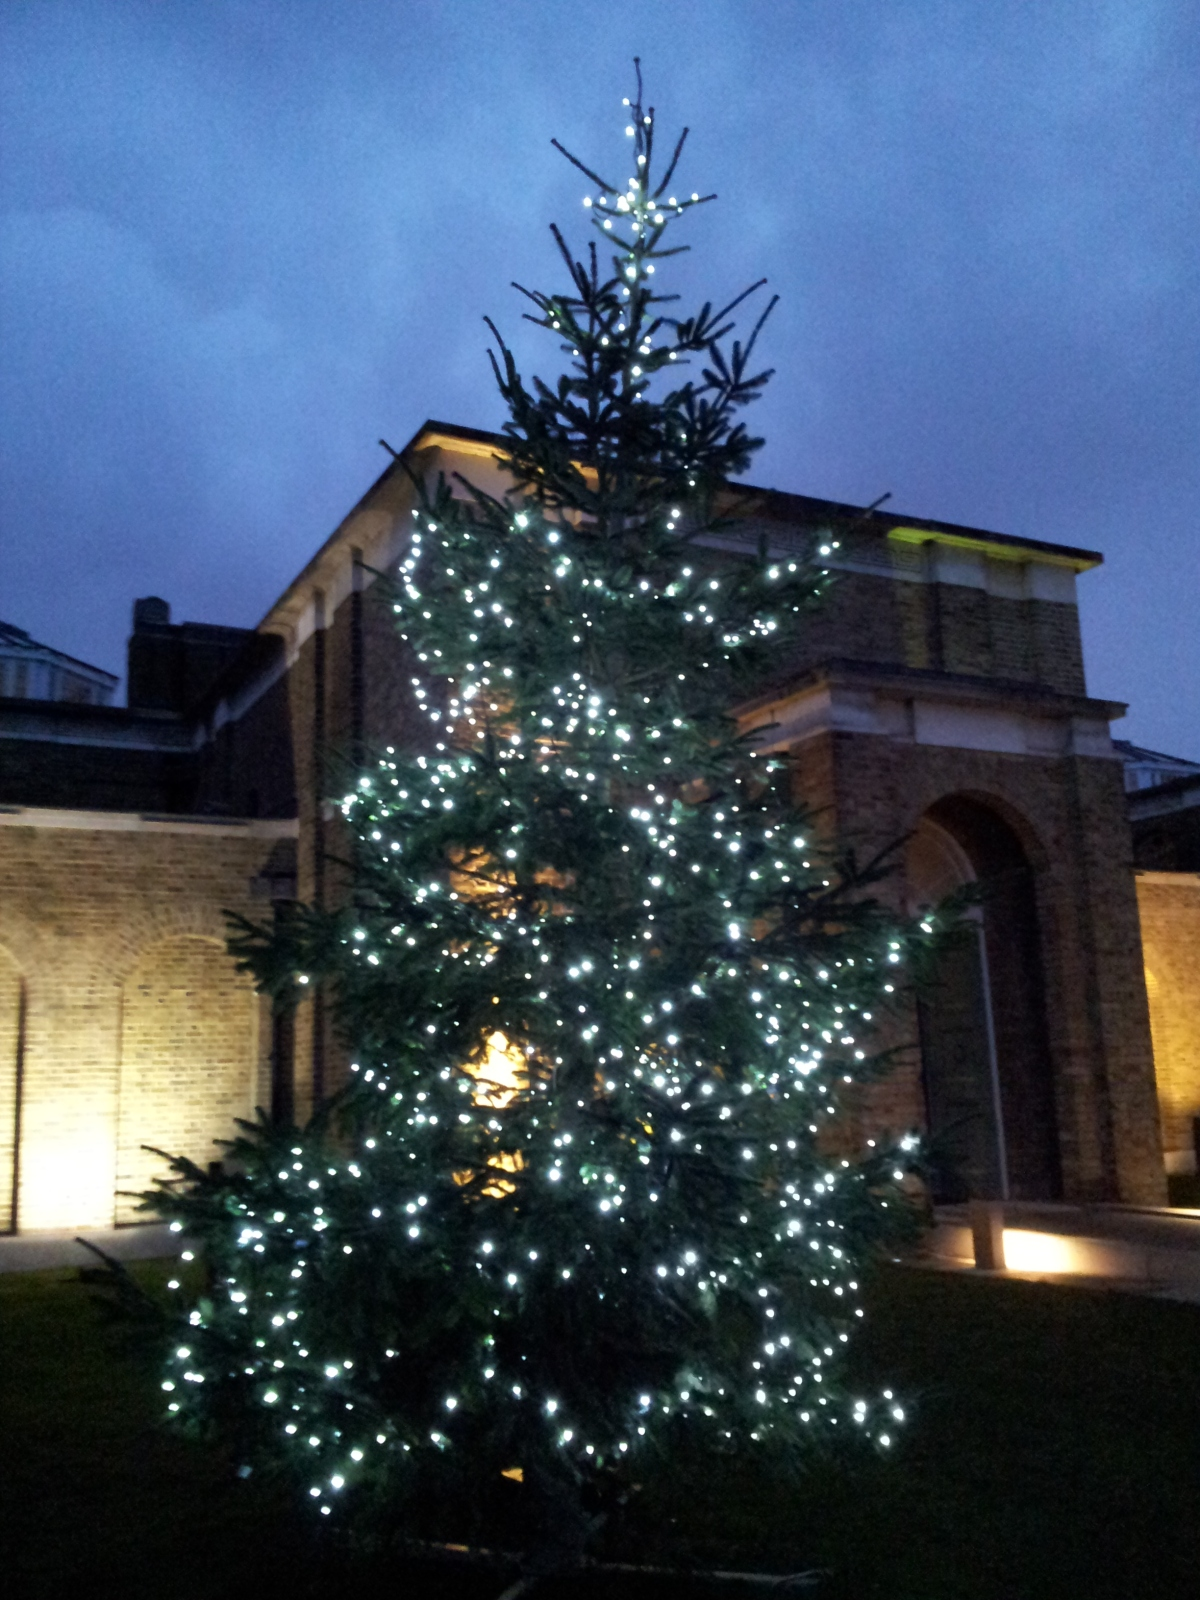 Christmas tree at Dulwich Gallery against the sky